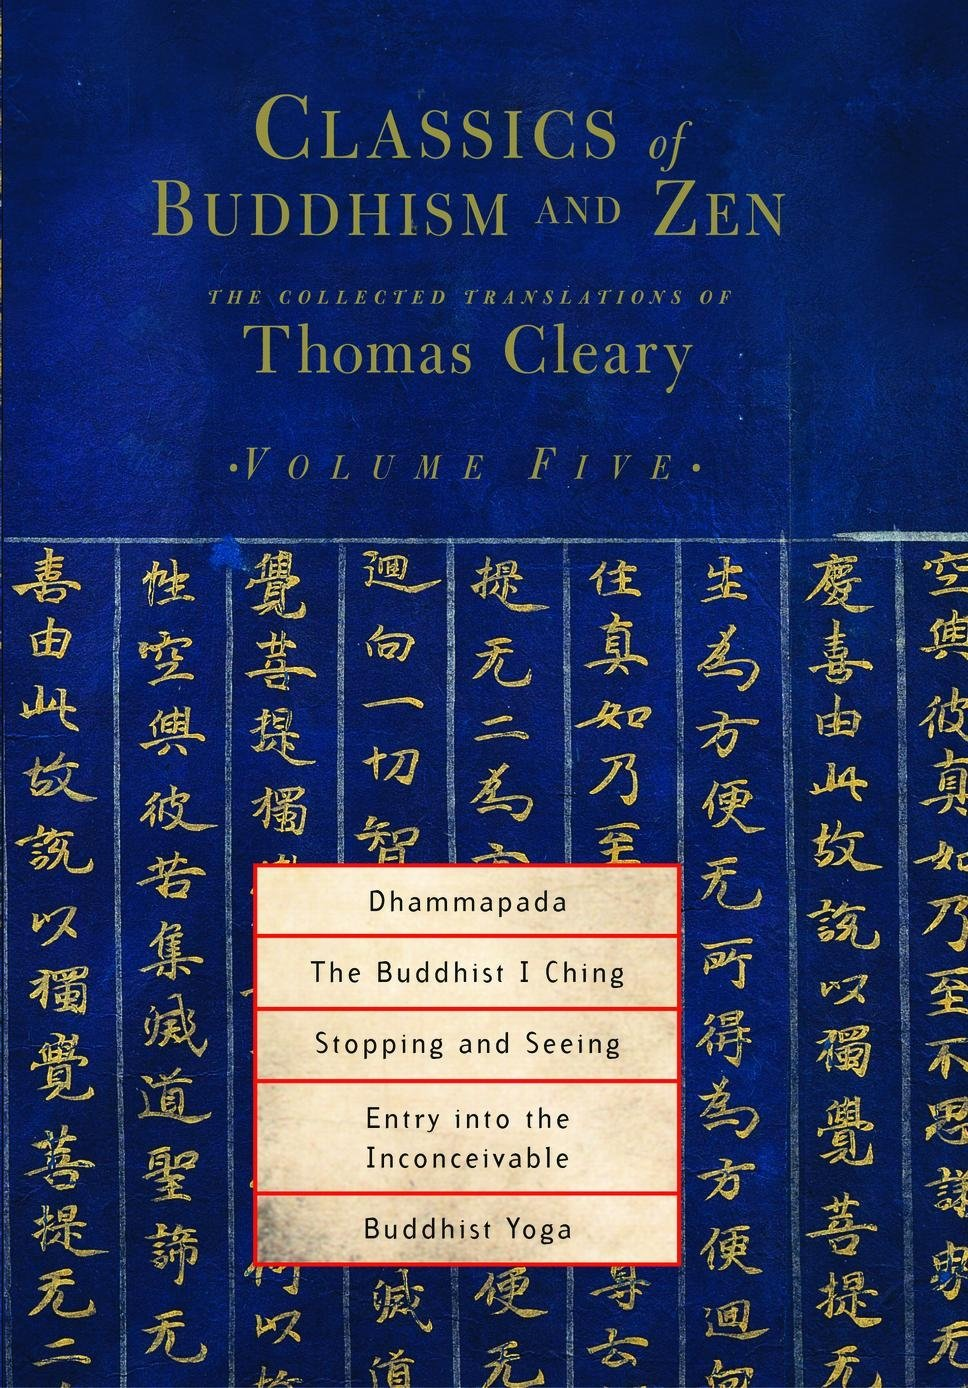 classics-of-buddhism-and-zen-volume-five-the-collected-translations-of-thomas-cleary